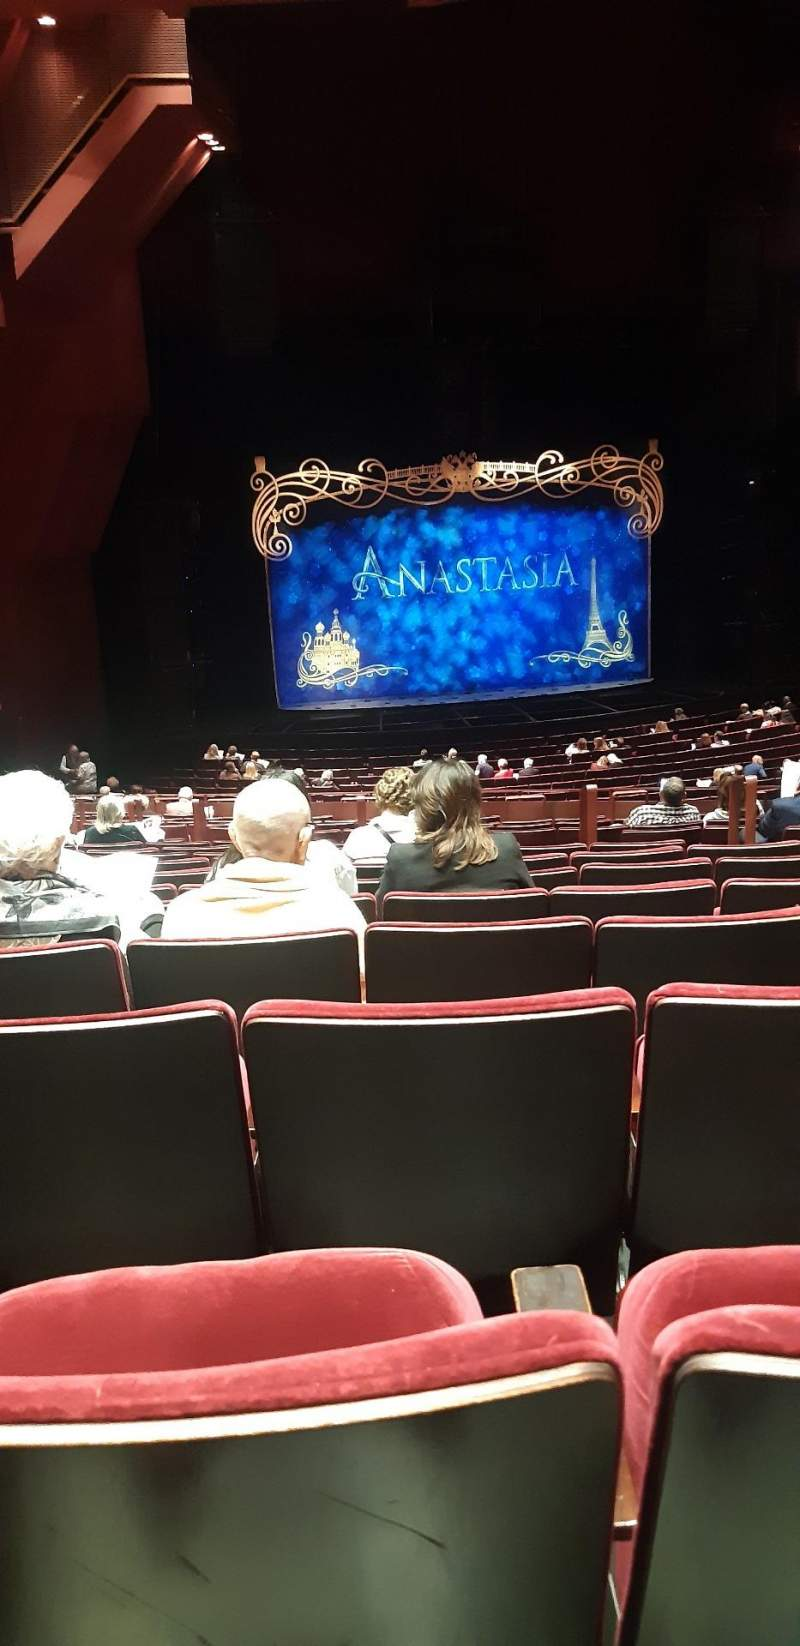 Seating view for segerstrom hall Section Orchestra Row T Seat 115